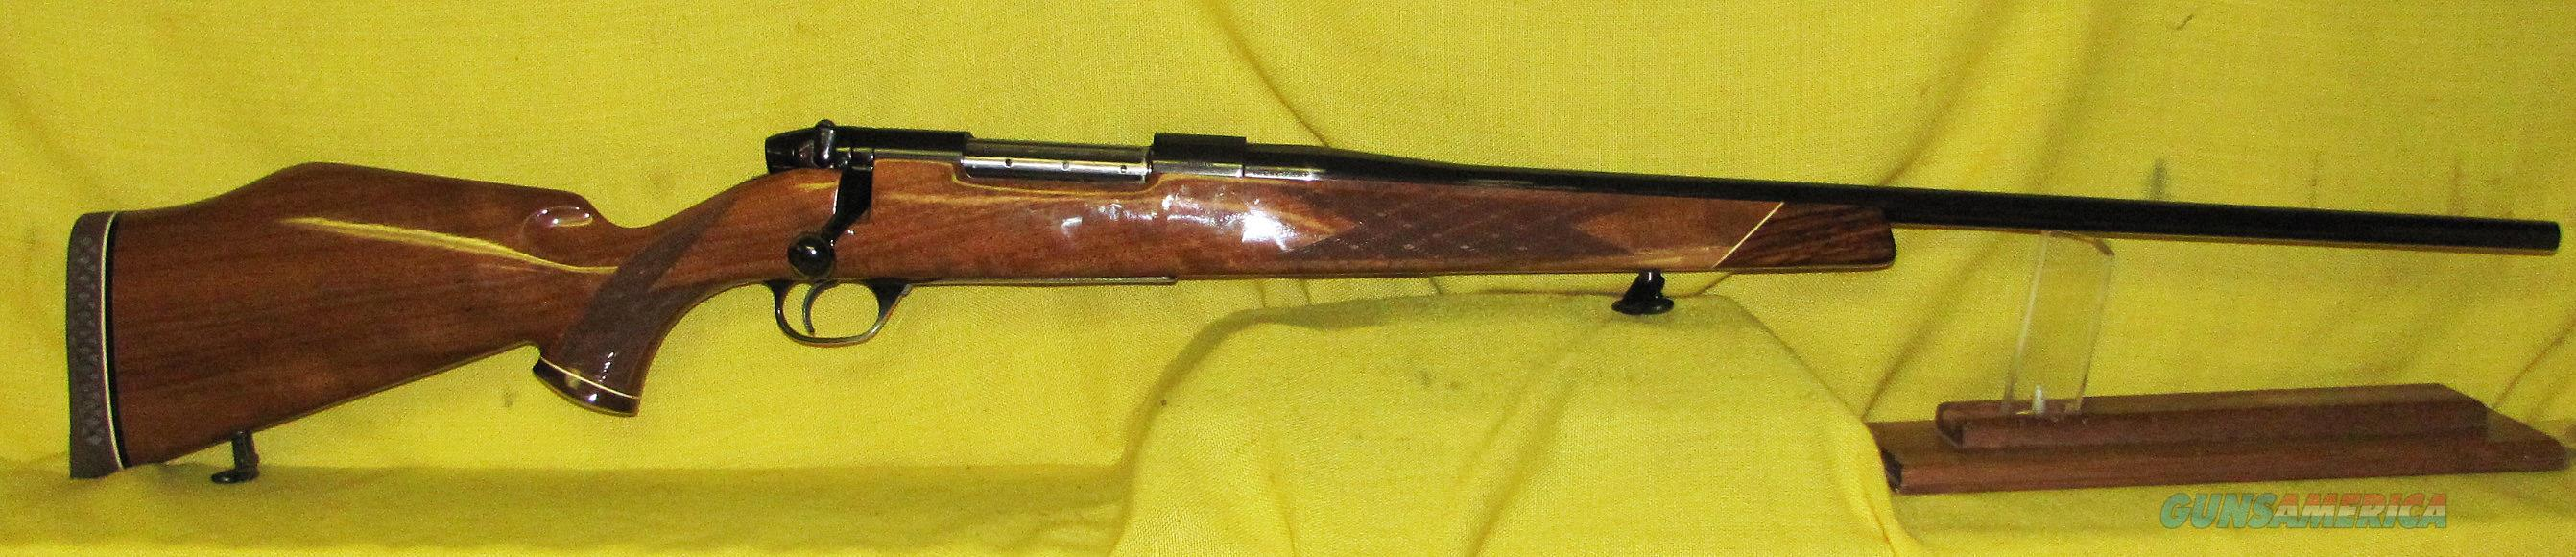 WEATHERBY (GERMANY) MKV  Guns > Rifles > Weatherby Rifles > Sporting